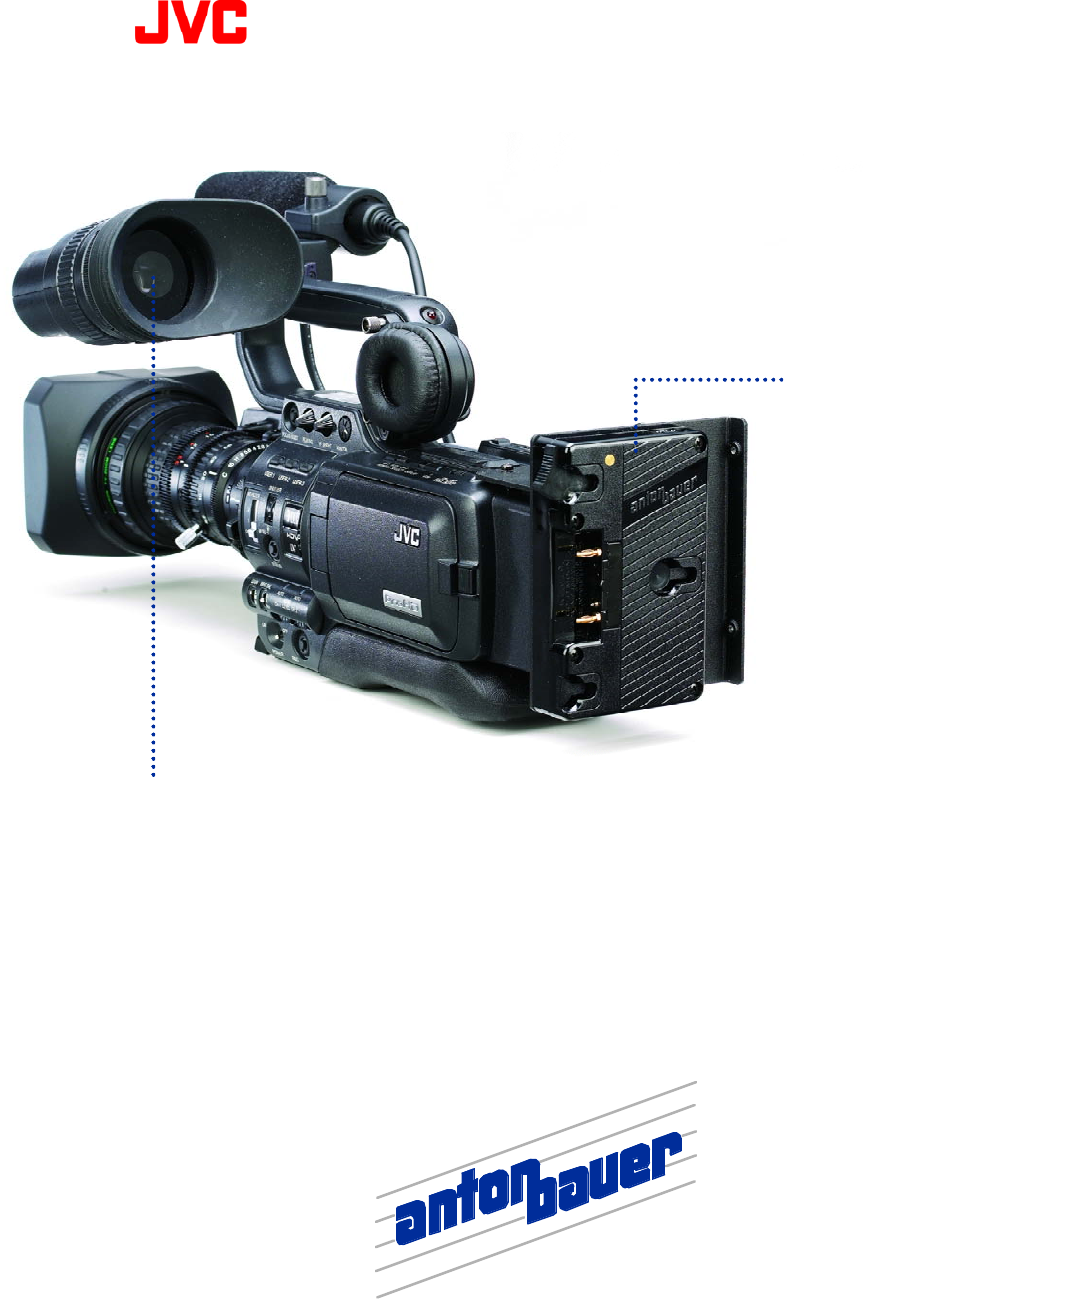 JVC ABDIONICPKG Camcorder Accessories User Manual